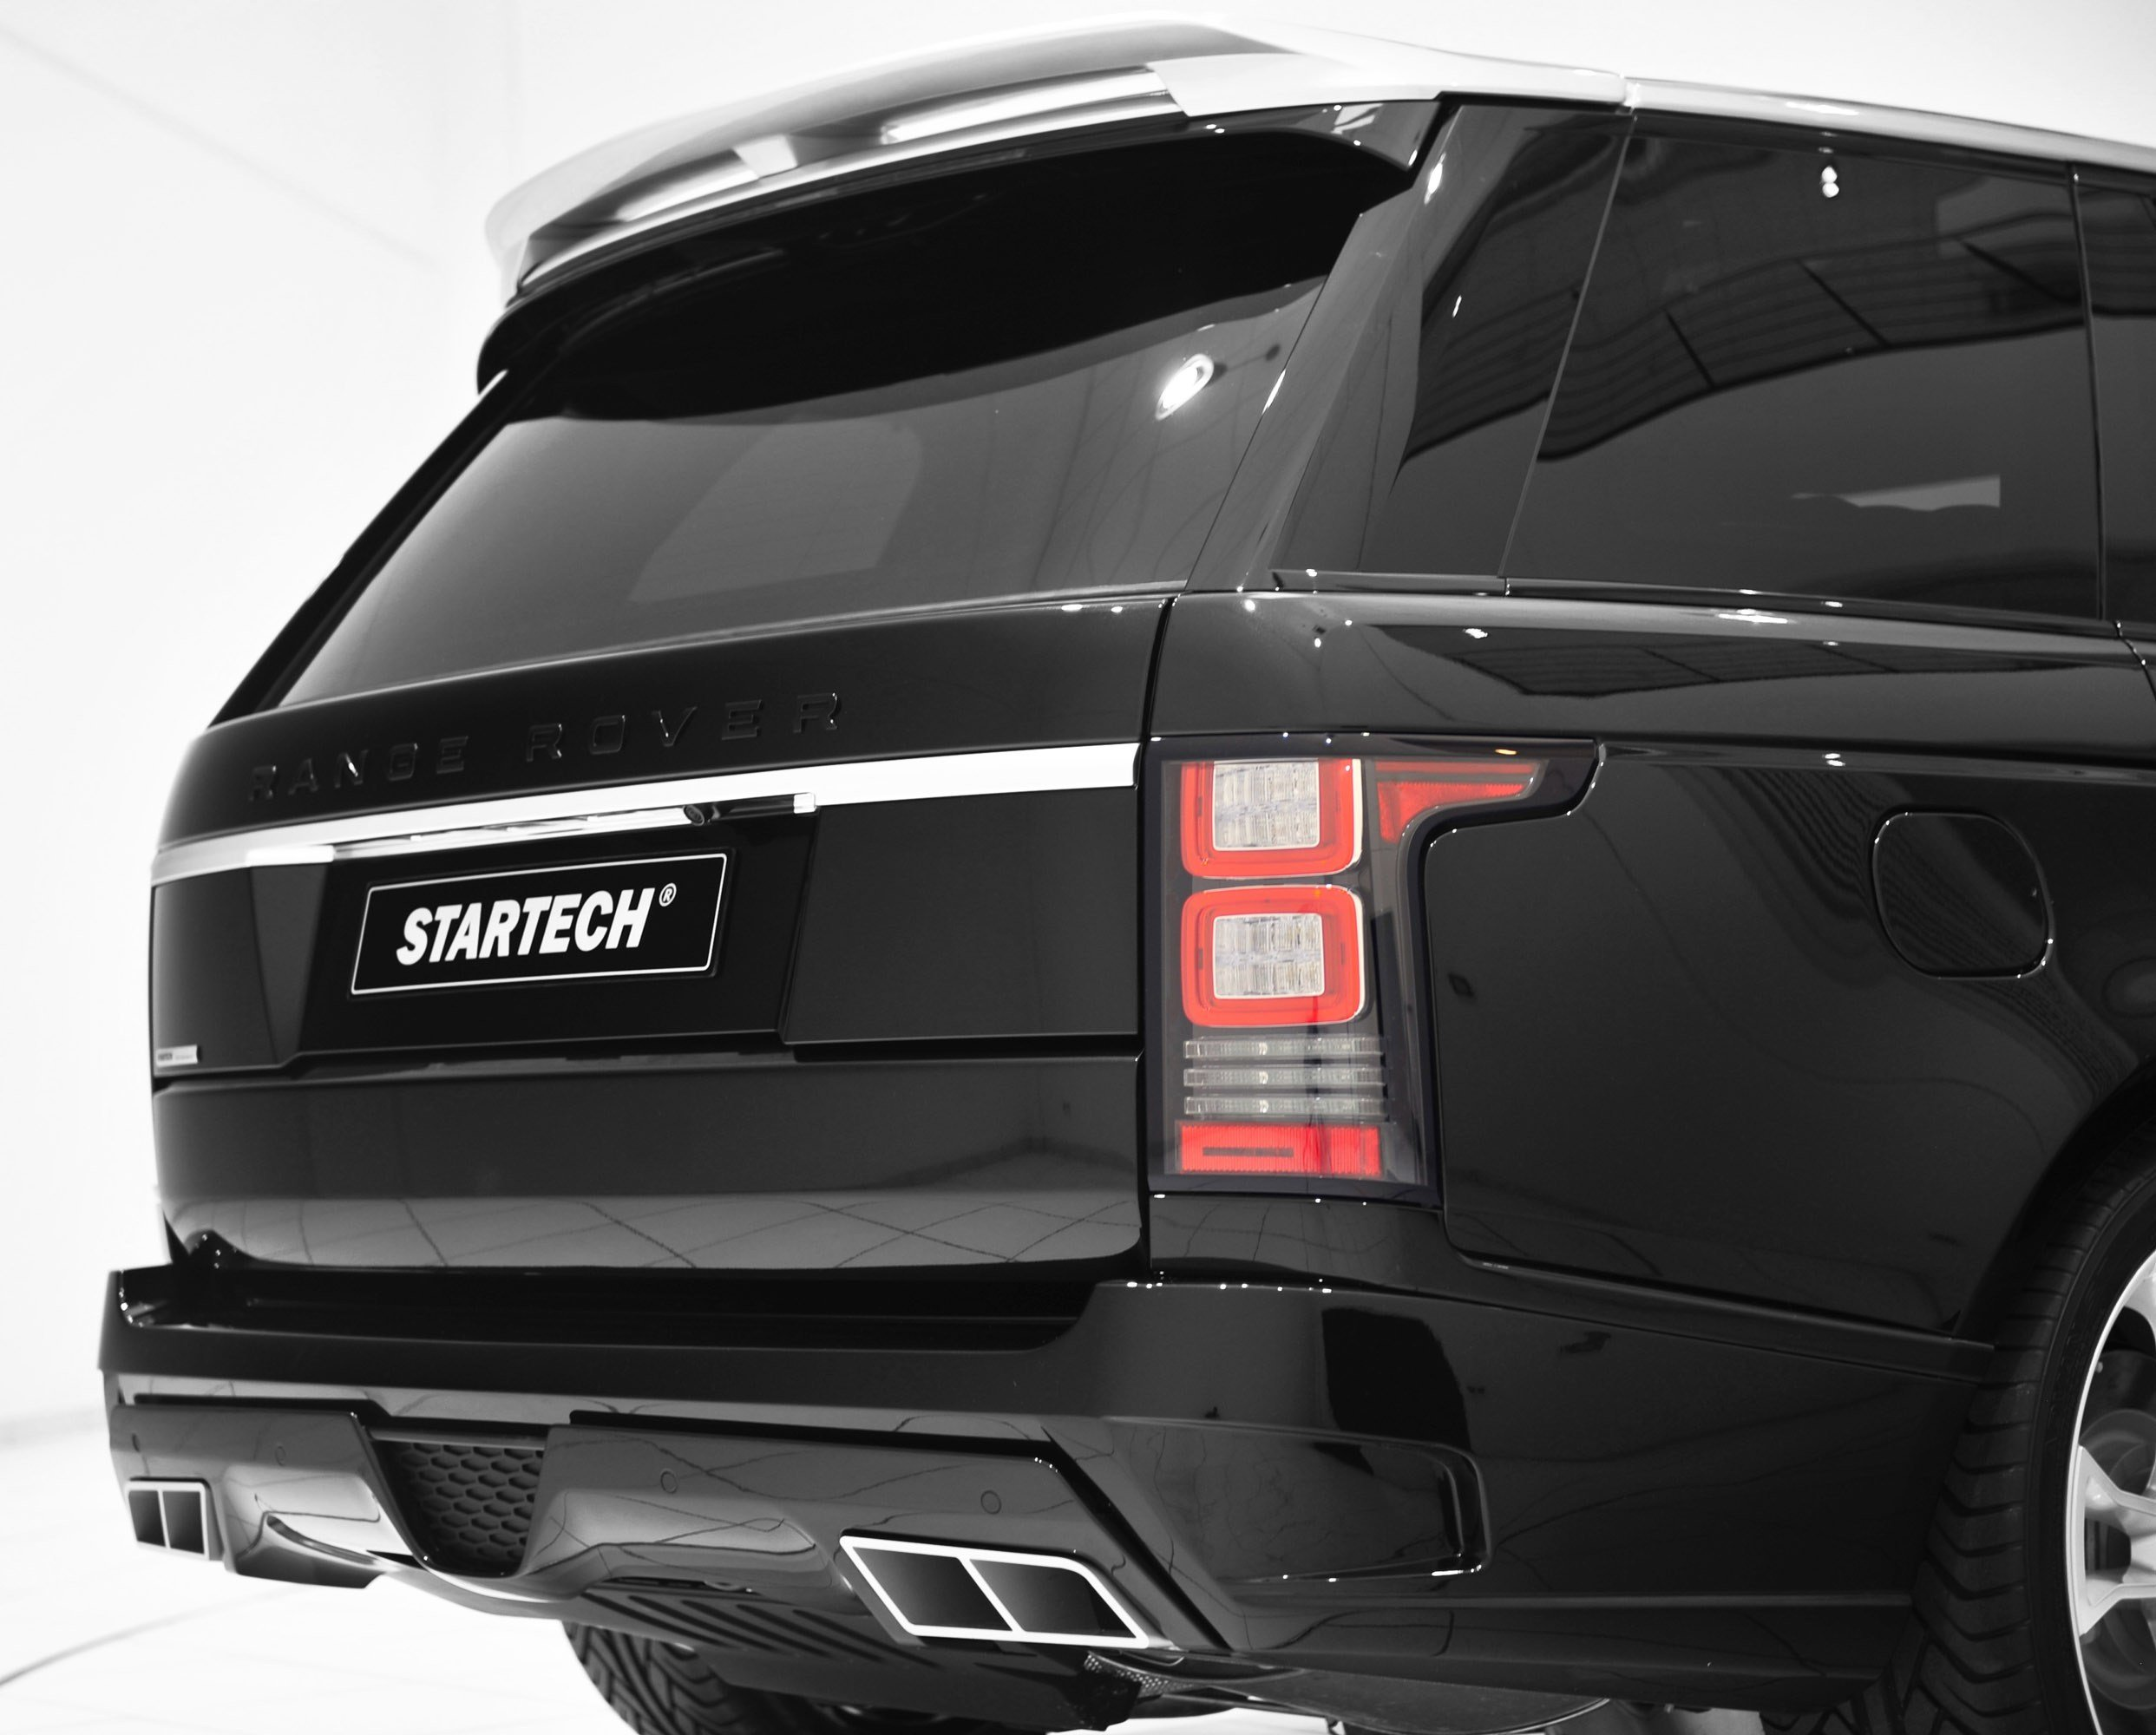 New Startech 2013 Range Rover In Geneva On This Month